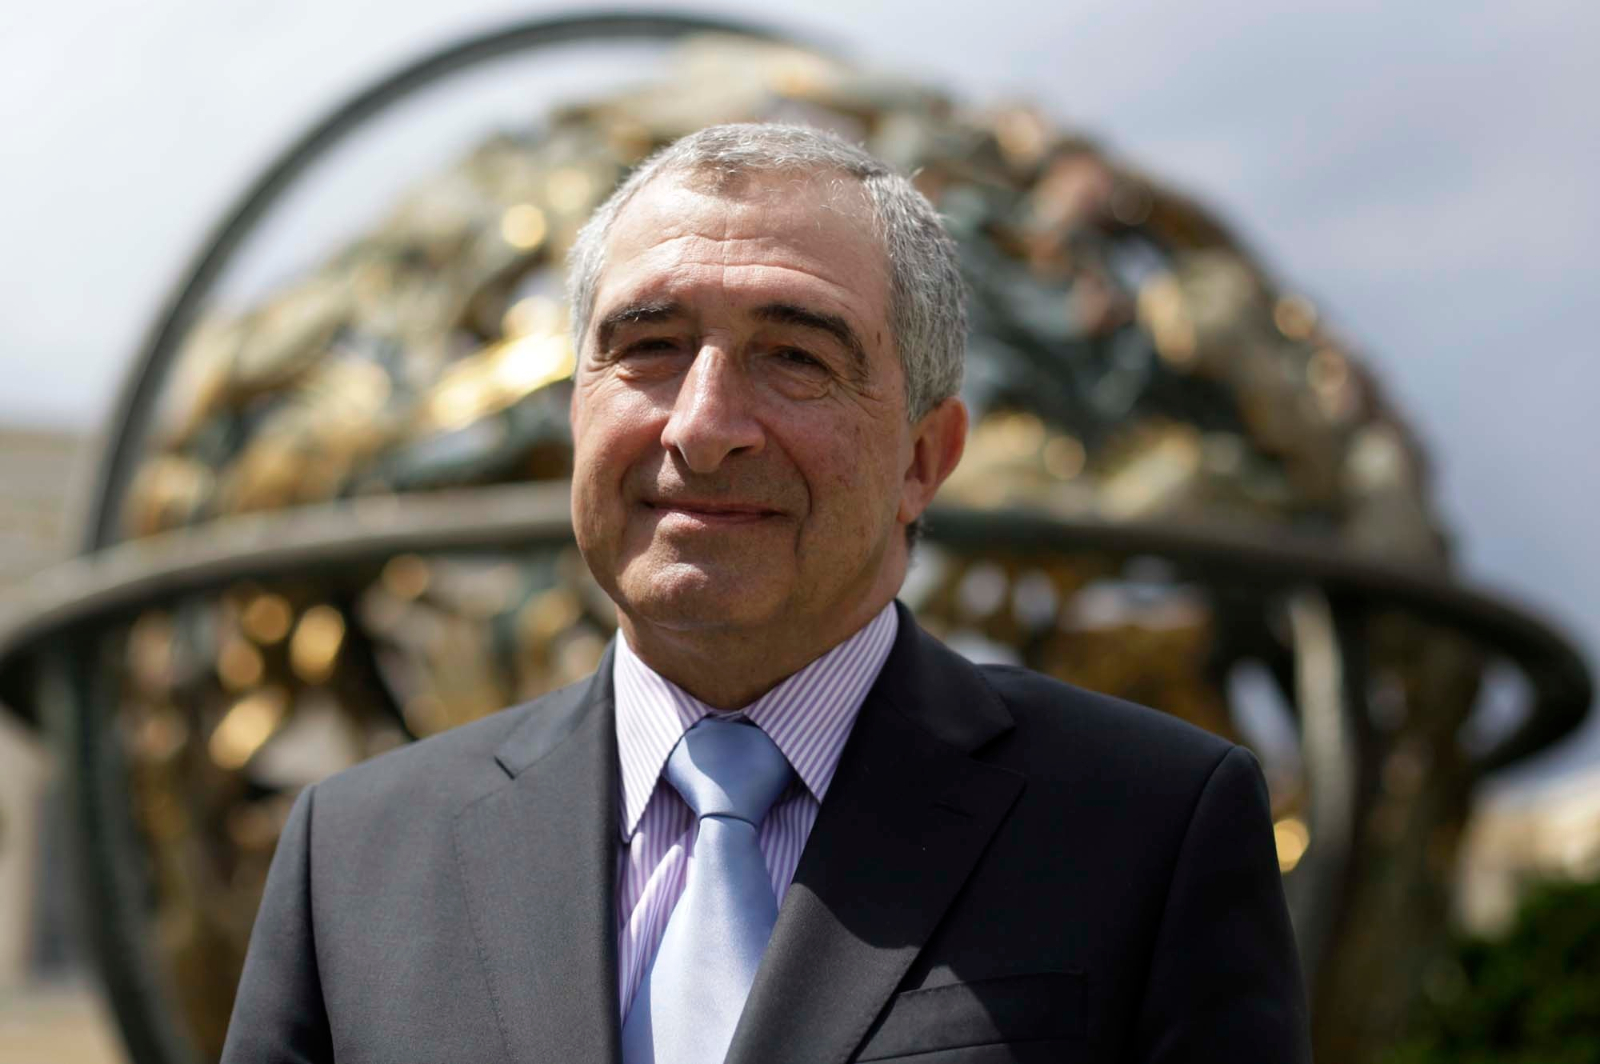 Sir Nigel Rodley, chairperson of the UN Human Rights Committee